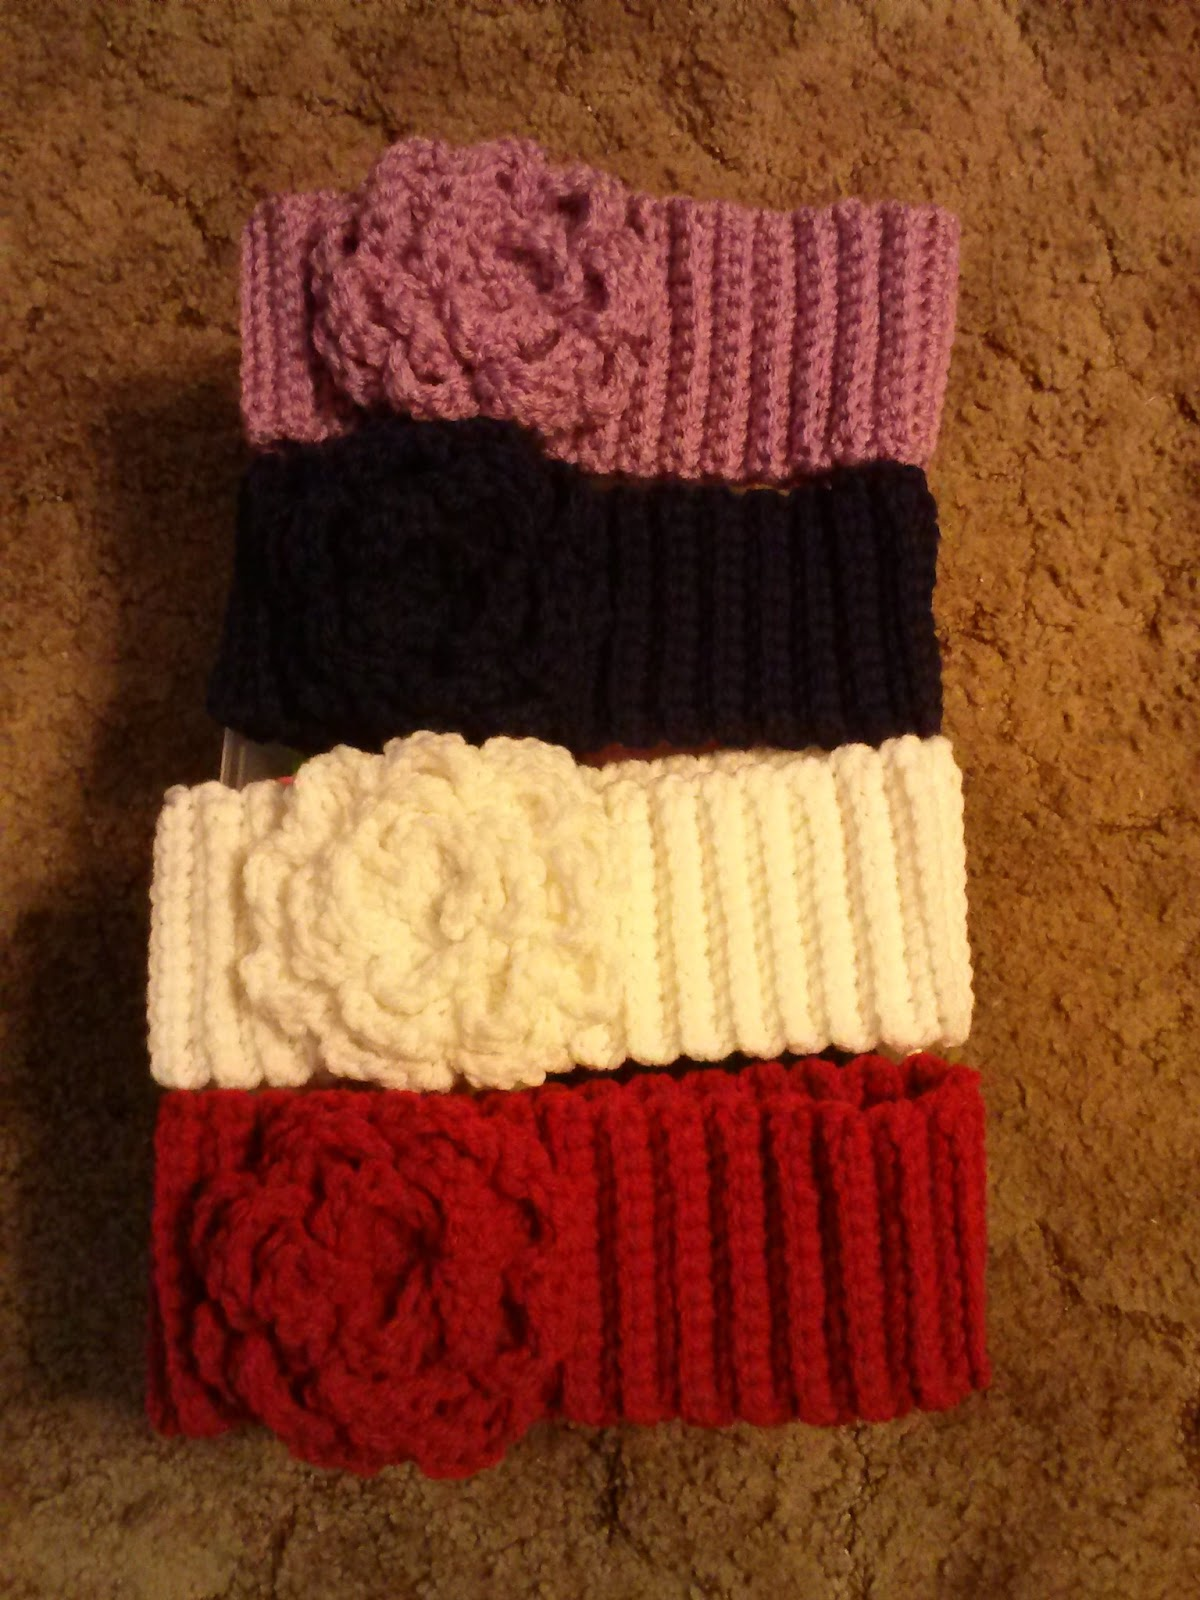 Free Crochet Ribbed Headband Patterns : Family, Books and Crochet...Oh My!: Ribbed Crochet Headbands